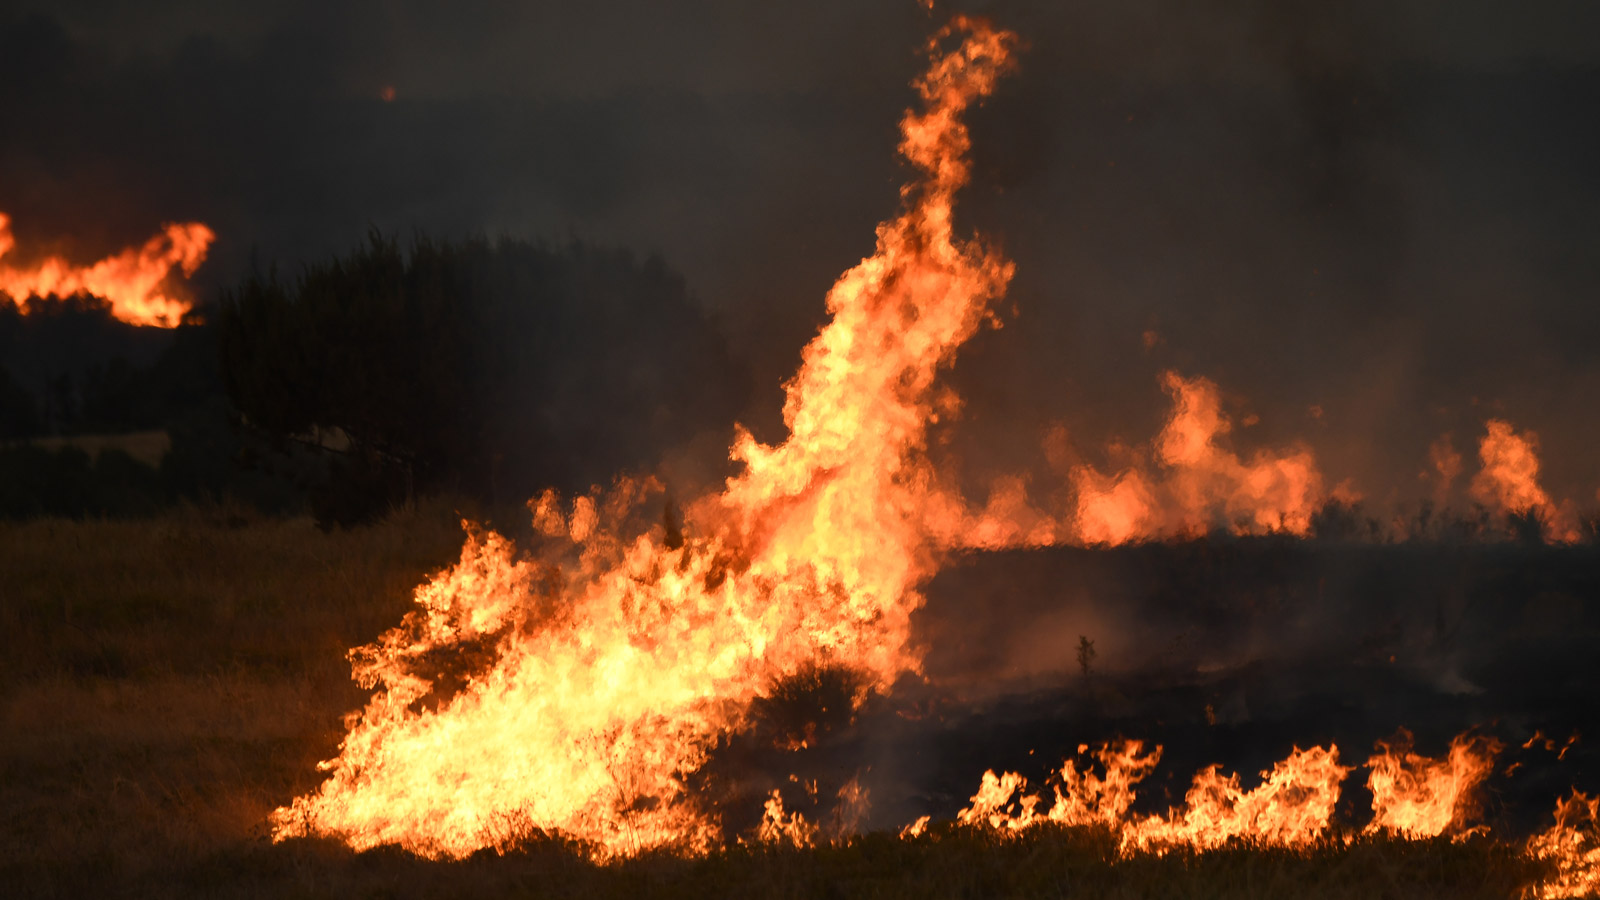 The Beulah Hill Fire burns near the town of Beulah on Oct. 3. Residents in the area were placed on pre-evacuation status. (credit: RJ Sangosti/The Denver Post via Getty Images)